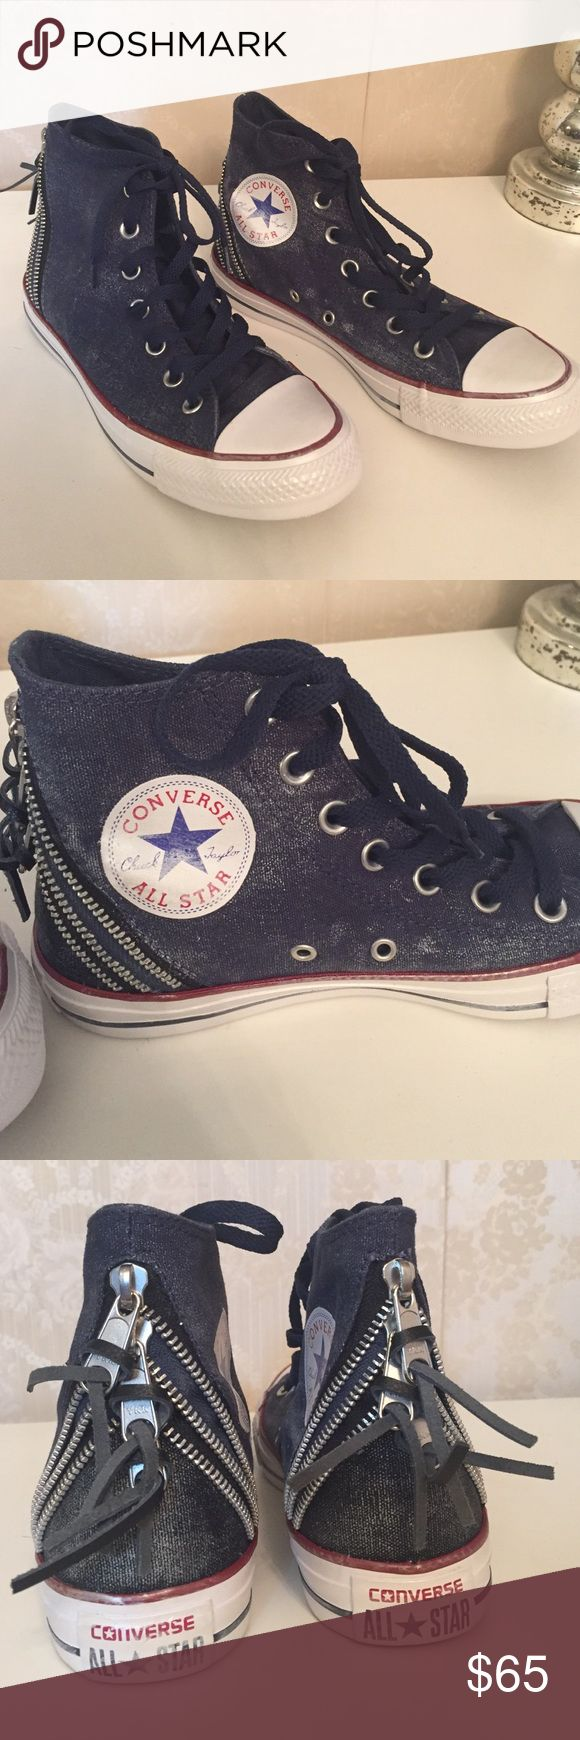 Denim Converse high tops Brand new without box Navy distress denim hi tops with zipper details on the back! Size 7 Women's Converse Shoes Athletic Shoes